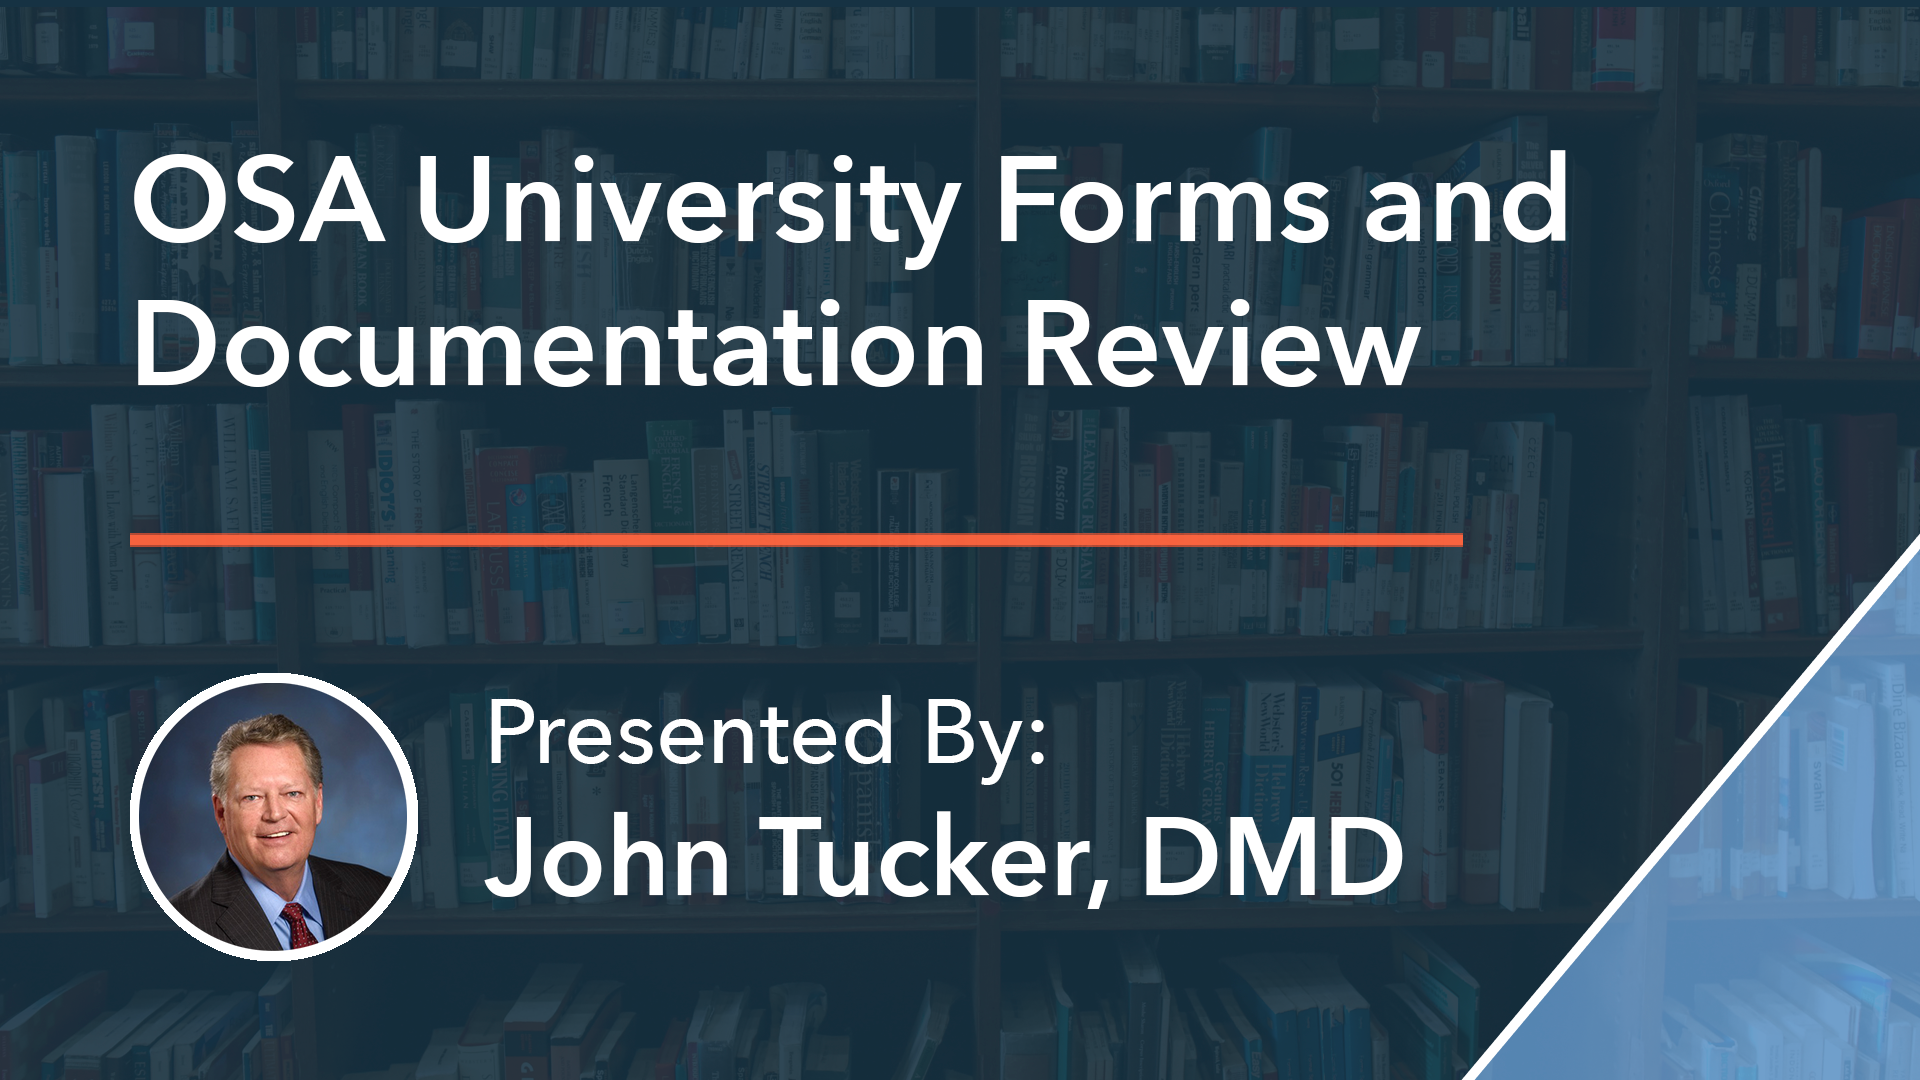 OSA University Forms and Documentation Review Dr John Tucker